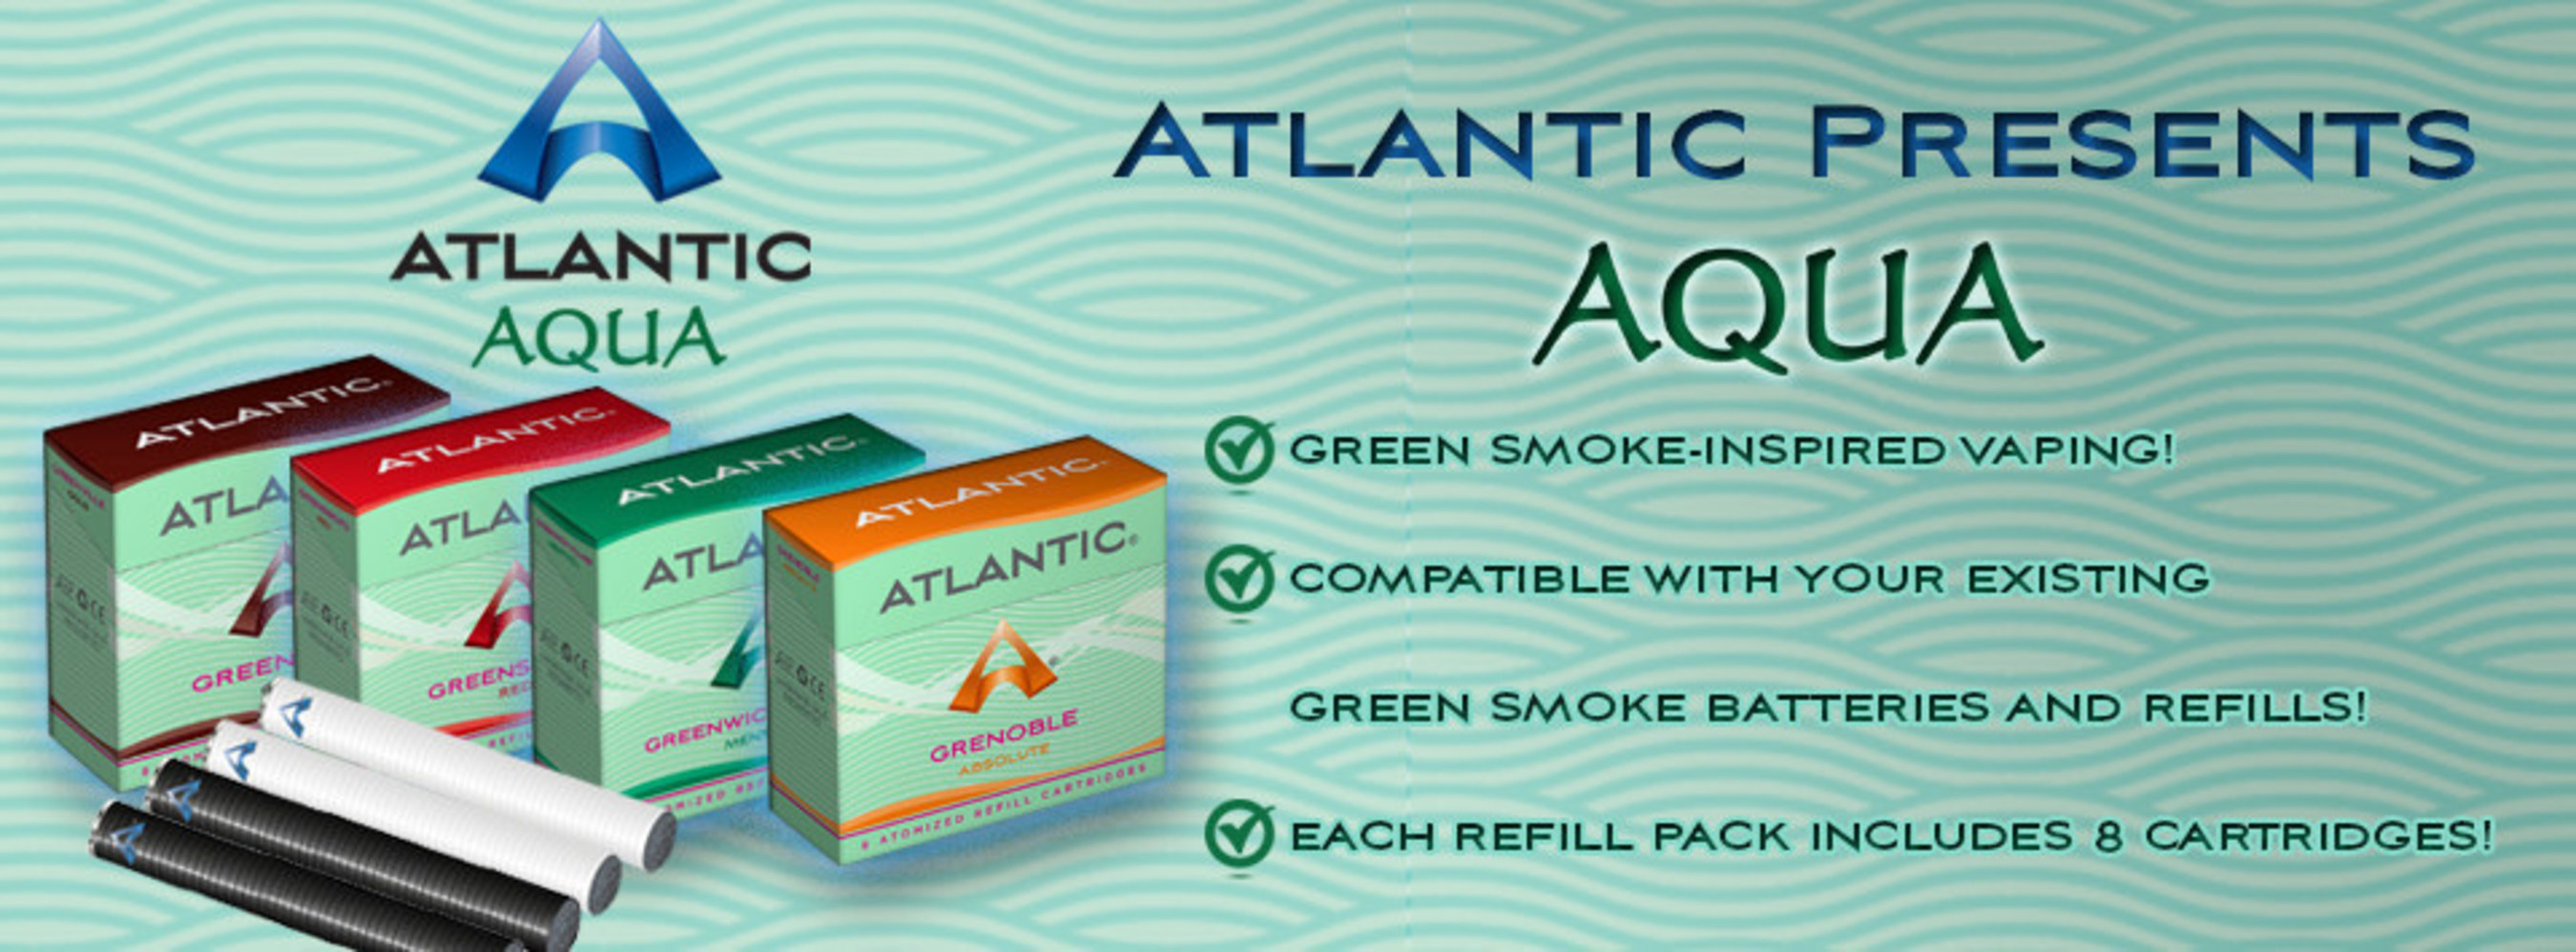 Atlantic Vapor Offers Solution as Green Smoke Europe Discontinues Distribution